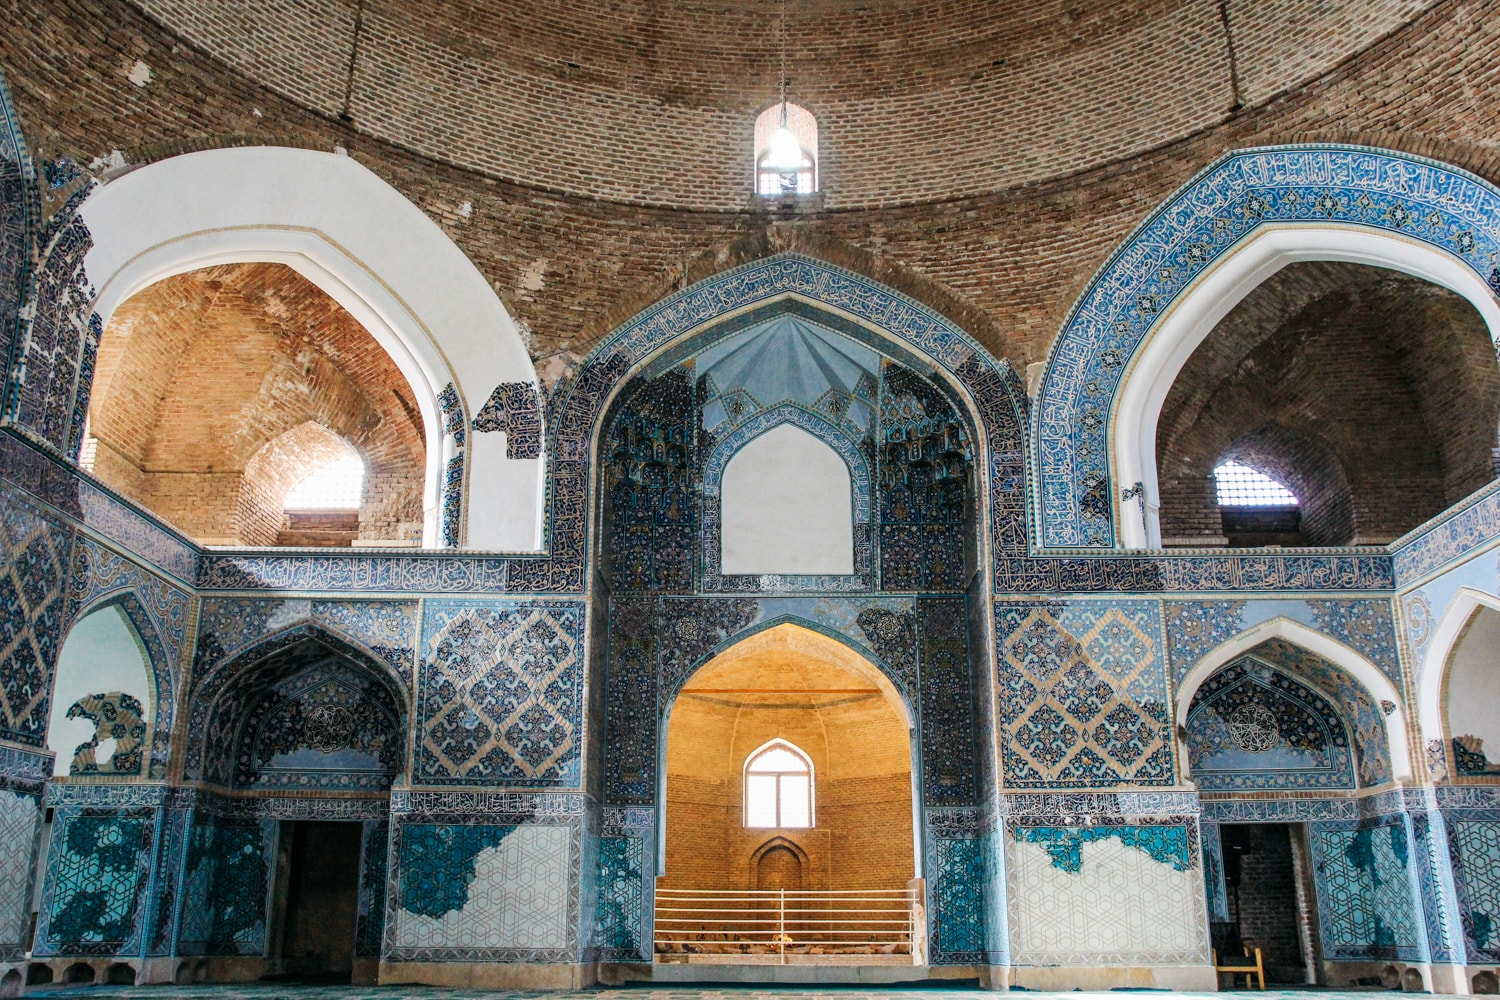 The Story Behind the Famous Blue Mosque in Iran